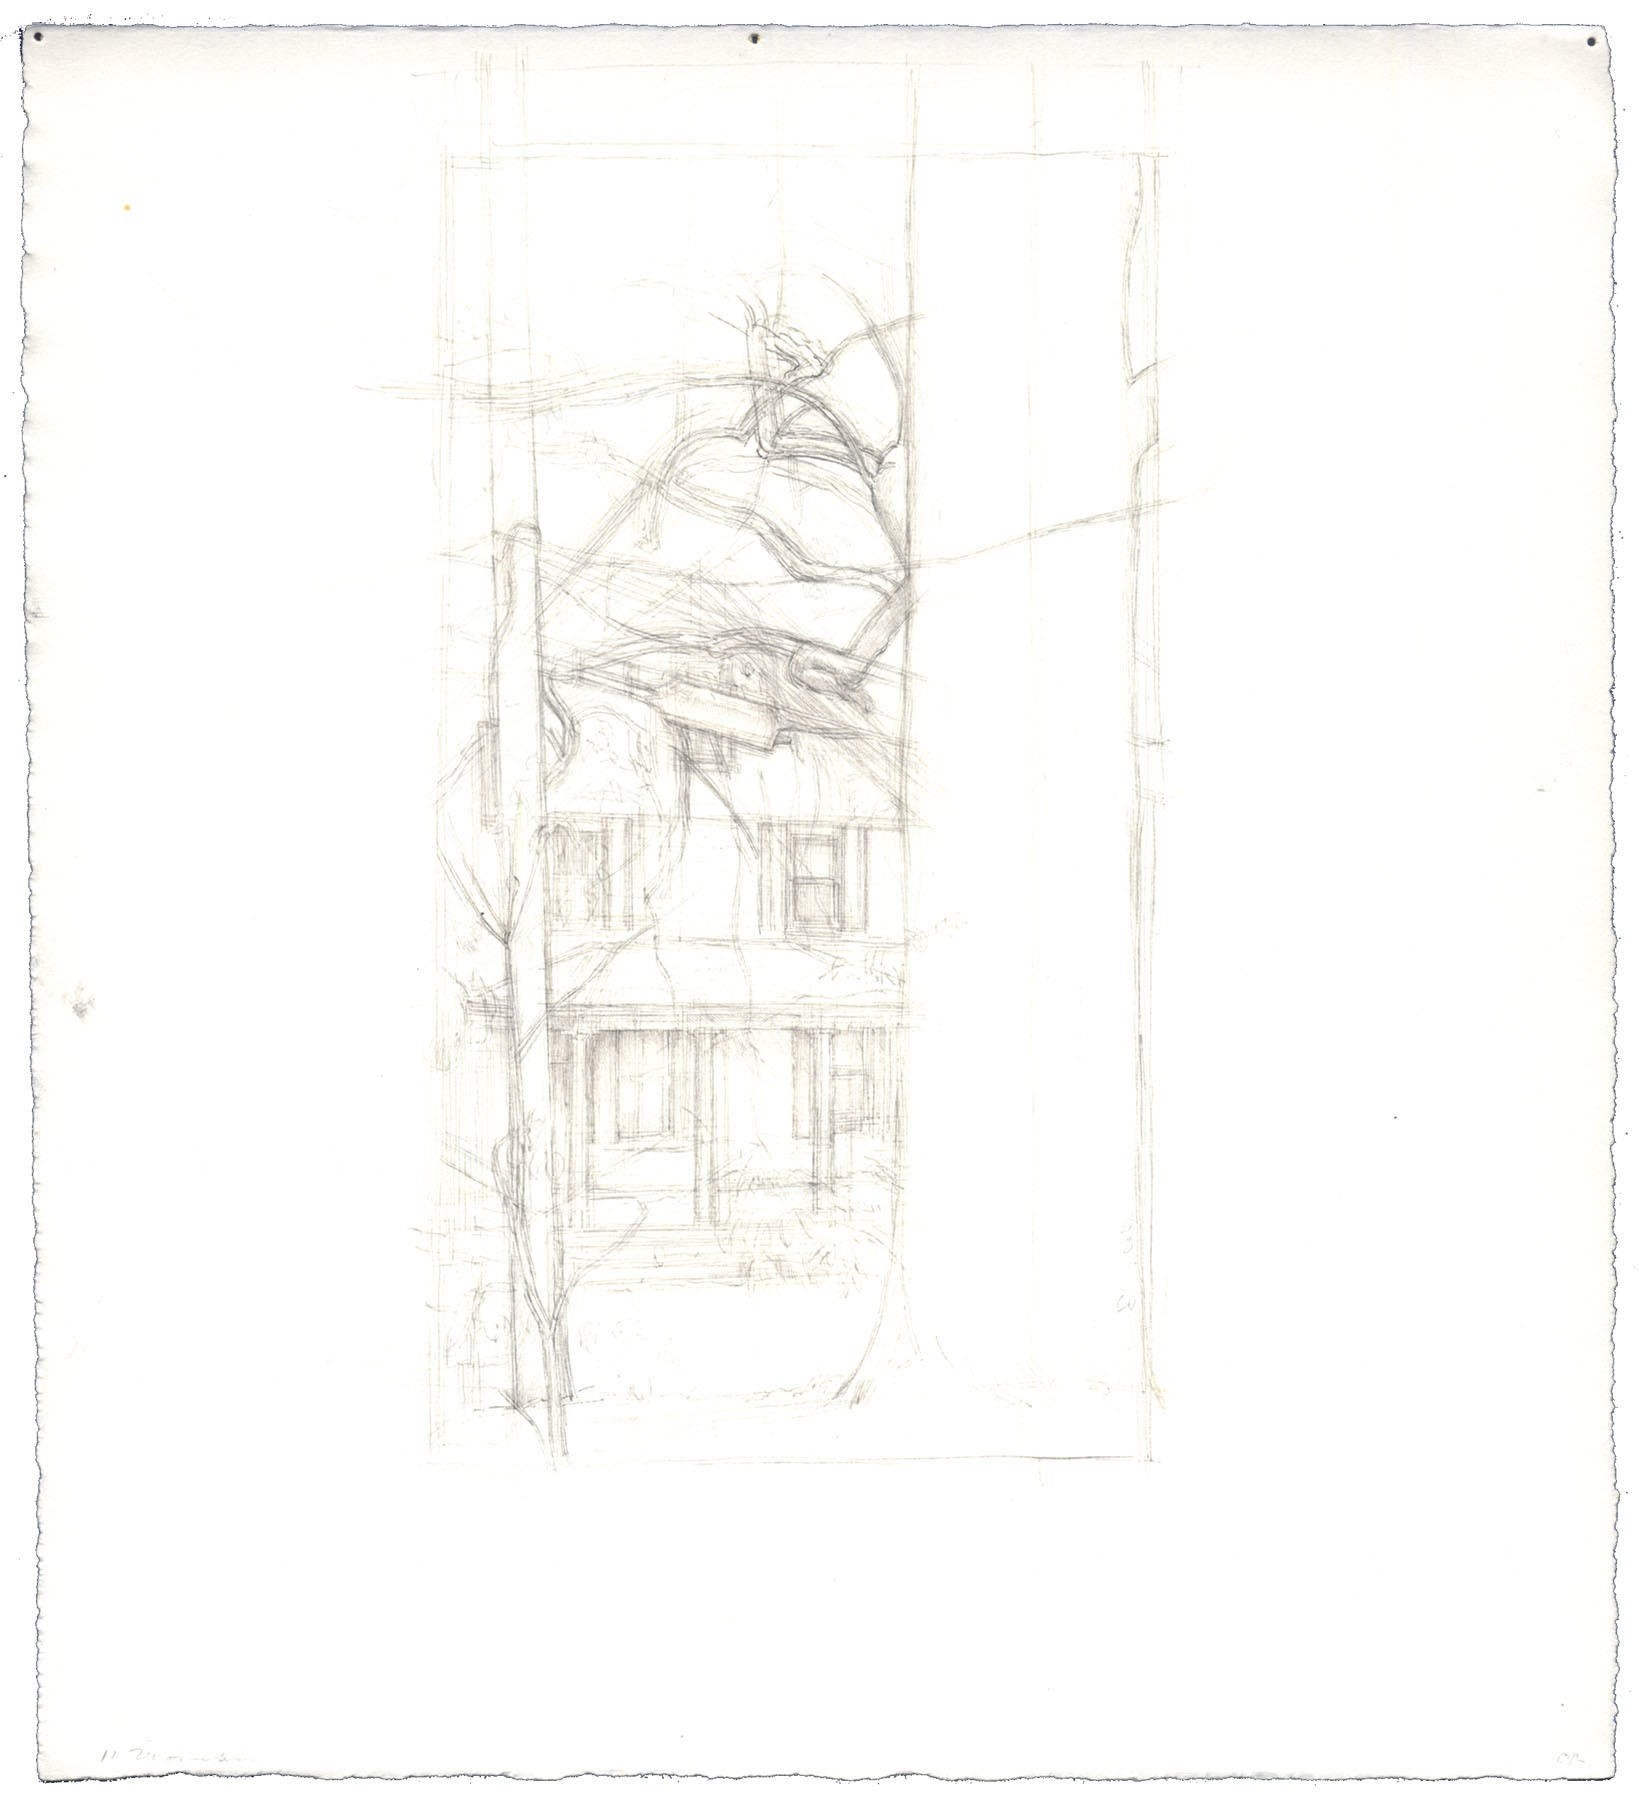 Study for Streetlight image